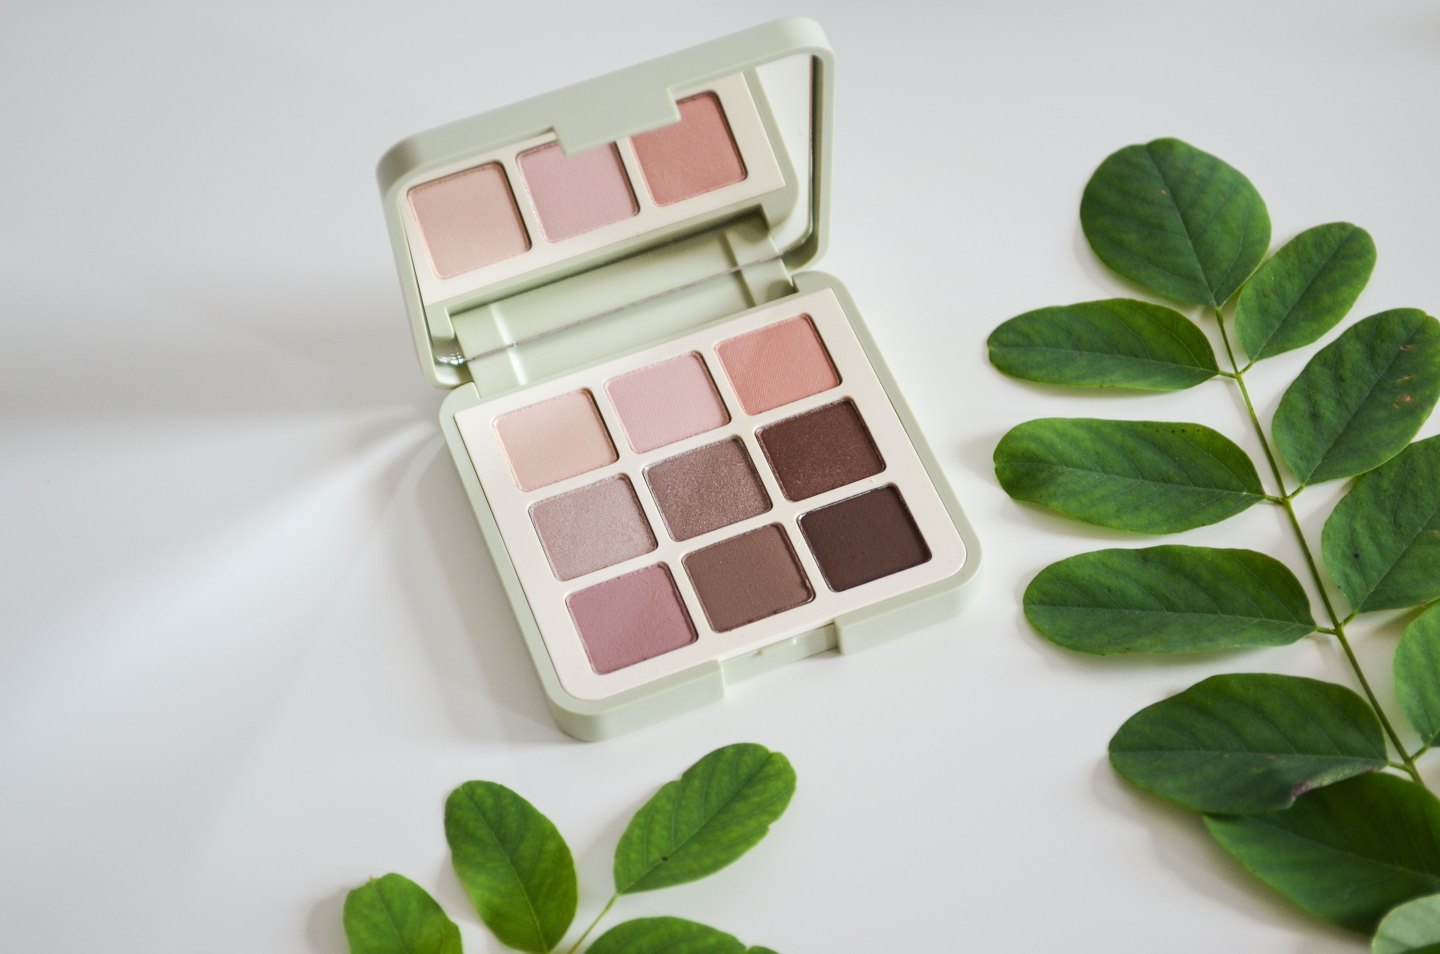 KIKO GREEN ME EYESHADOW PALETTE